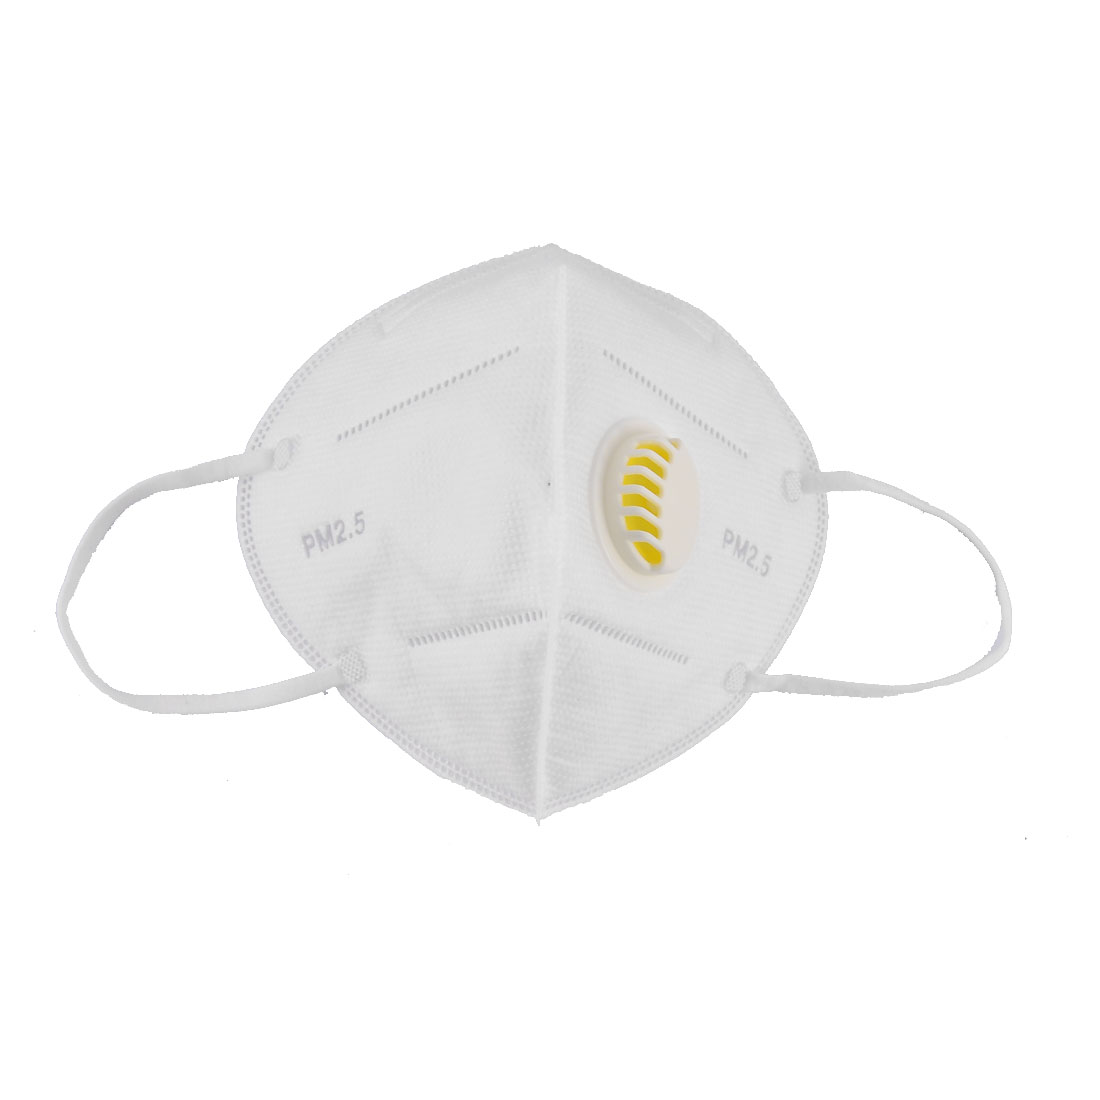 Non-Woven Fabric Stretchy Strap Dust Proof Breather Valve Face Masks White